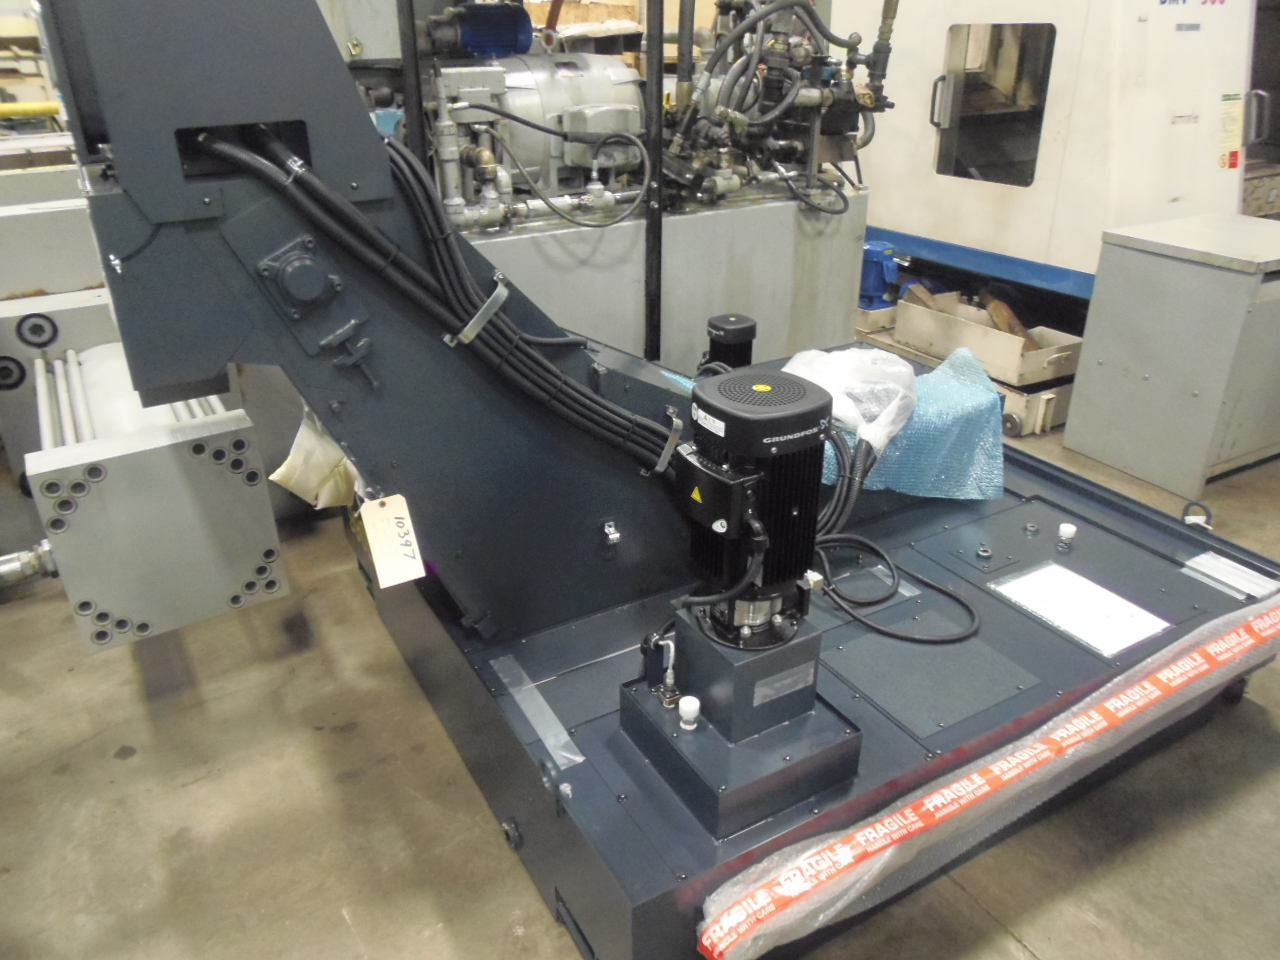 UNUSED HI PRESSURE COOLANT/CONVEYOR SYSTEM FROM MAKINO A61 HORIZONTAL MACHINING CENTER